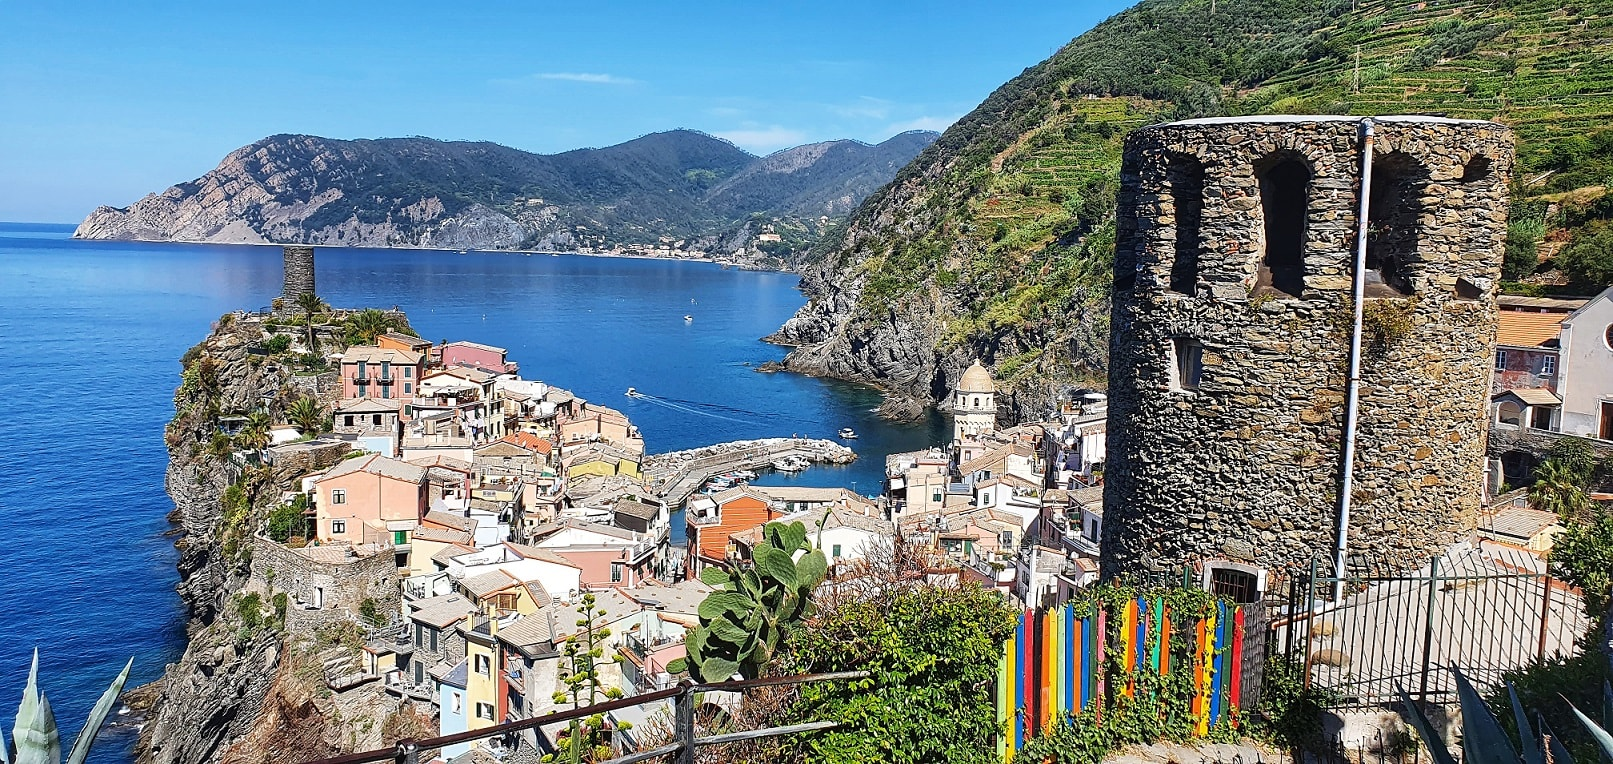 the view back over Vernazza